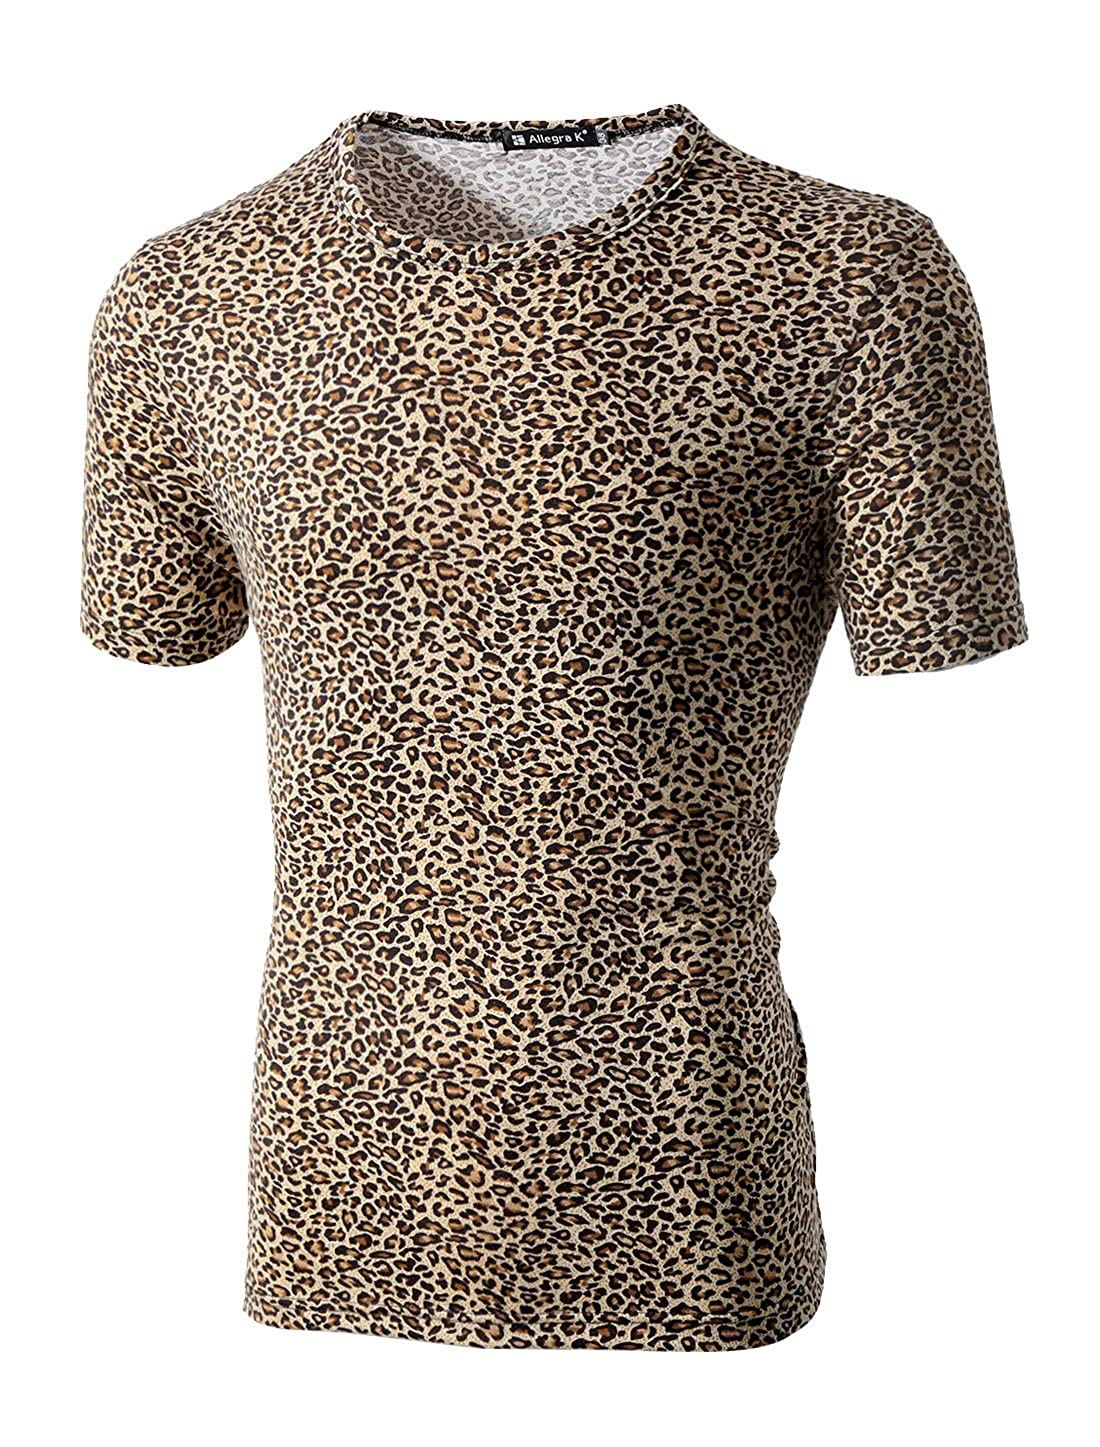 71a655b40 Amazon.com: uxcell Men Short Sleeve Round Neck Leopard Print T Shirt:  Clothing